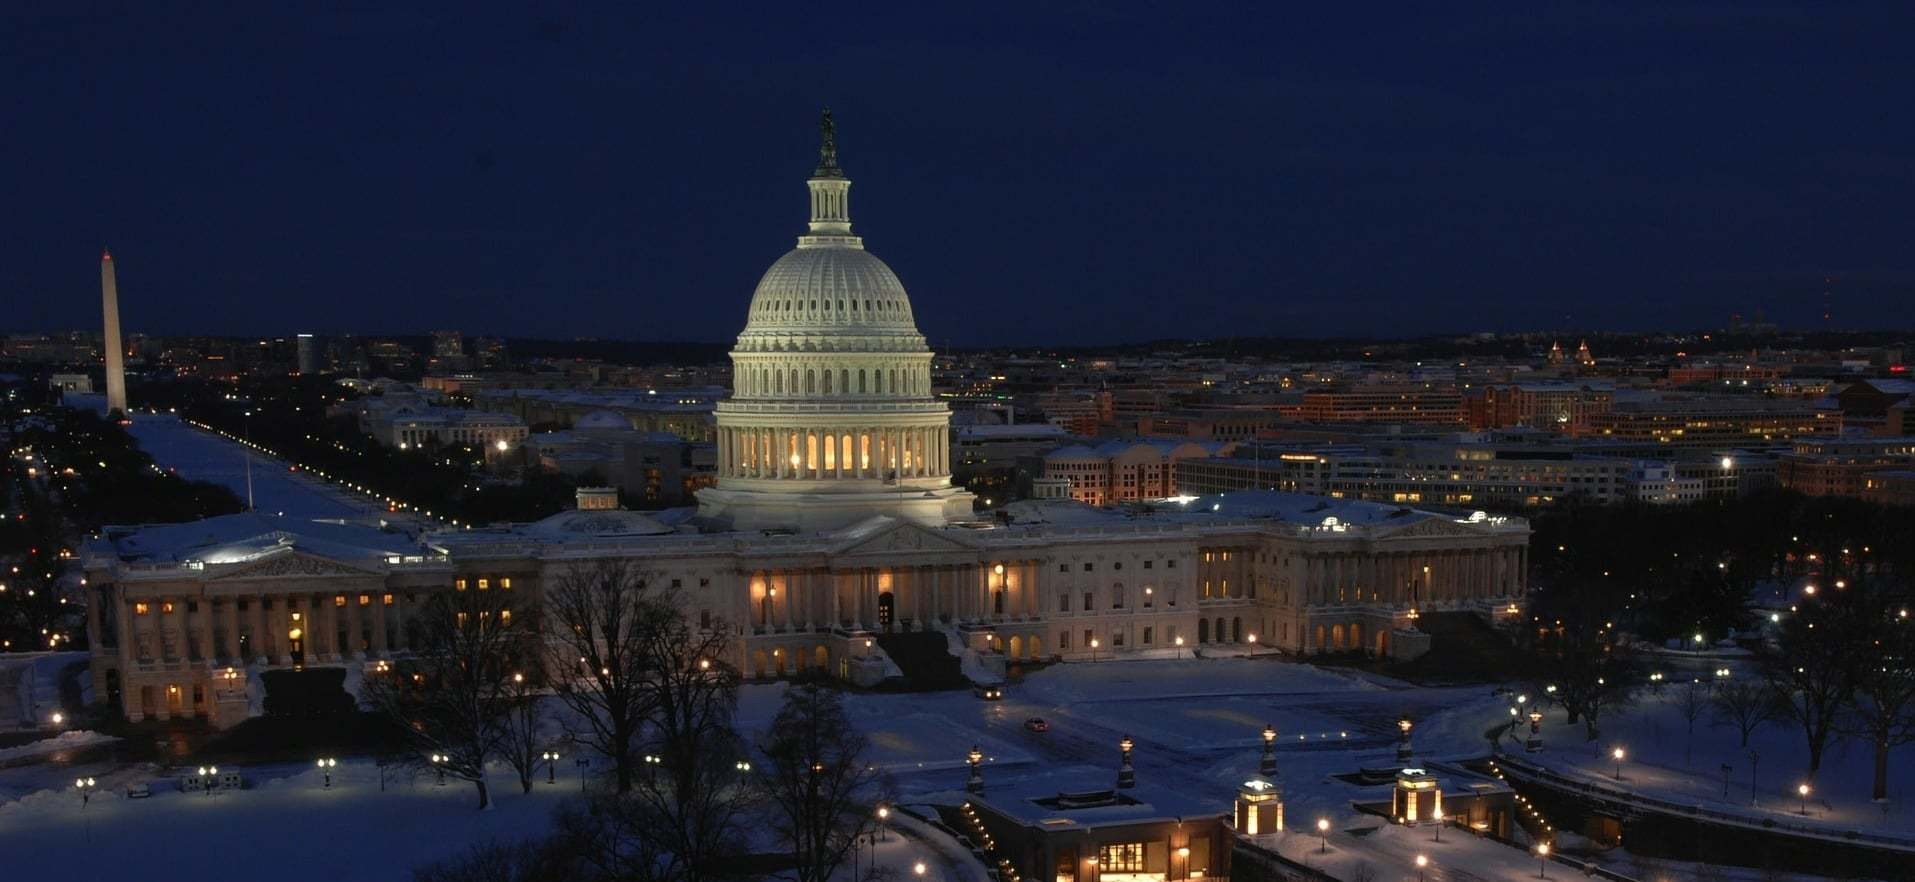 Who's Afraid of Big, Bad, Government Shutdowns?